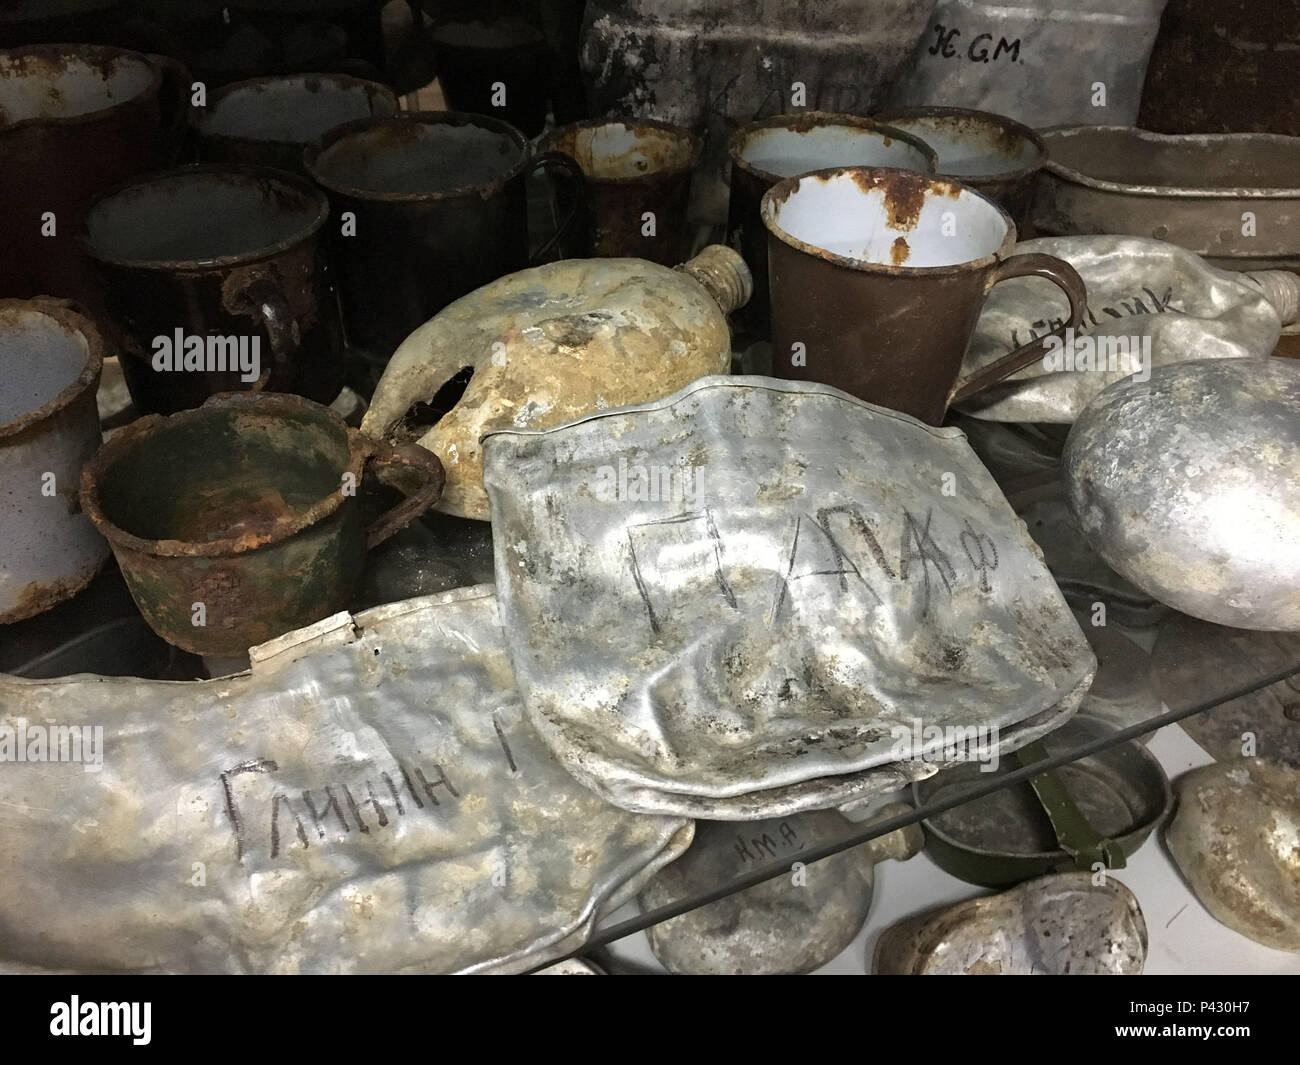 Rossoschka, Russia. 16th June, 2018. Remnants of the Battle of Stalingrad - cups, cookware and other utensils - can be seen in a hut on the «Rossoschka Military Cemetery», where there is a small private museum. Here not only soldiers of the German Wehrmacht are buried, but also members of the Red Army. The 72-year-old has been working here for three years: mowing the lawn in summer, shoveling snow in winter, keeping the facility in order, everything a janitor would do. Credit: Martin Moravec/dpa/Alamy Live News - Stock Image